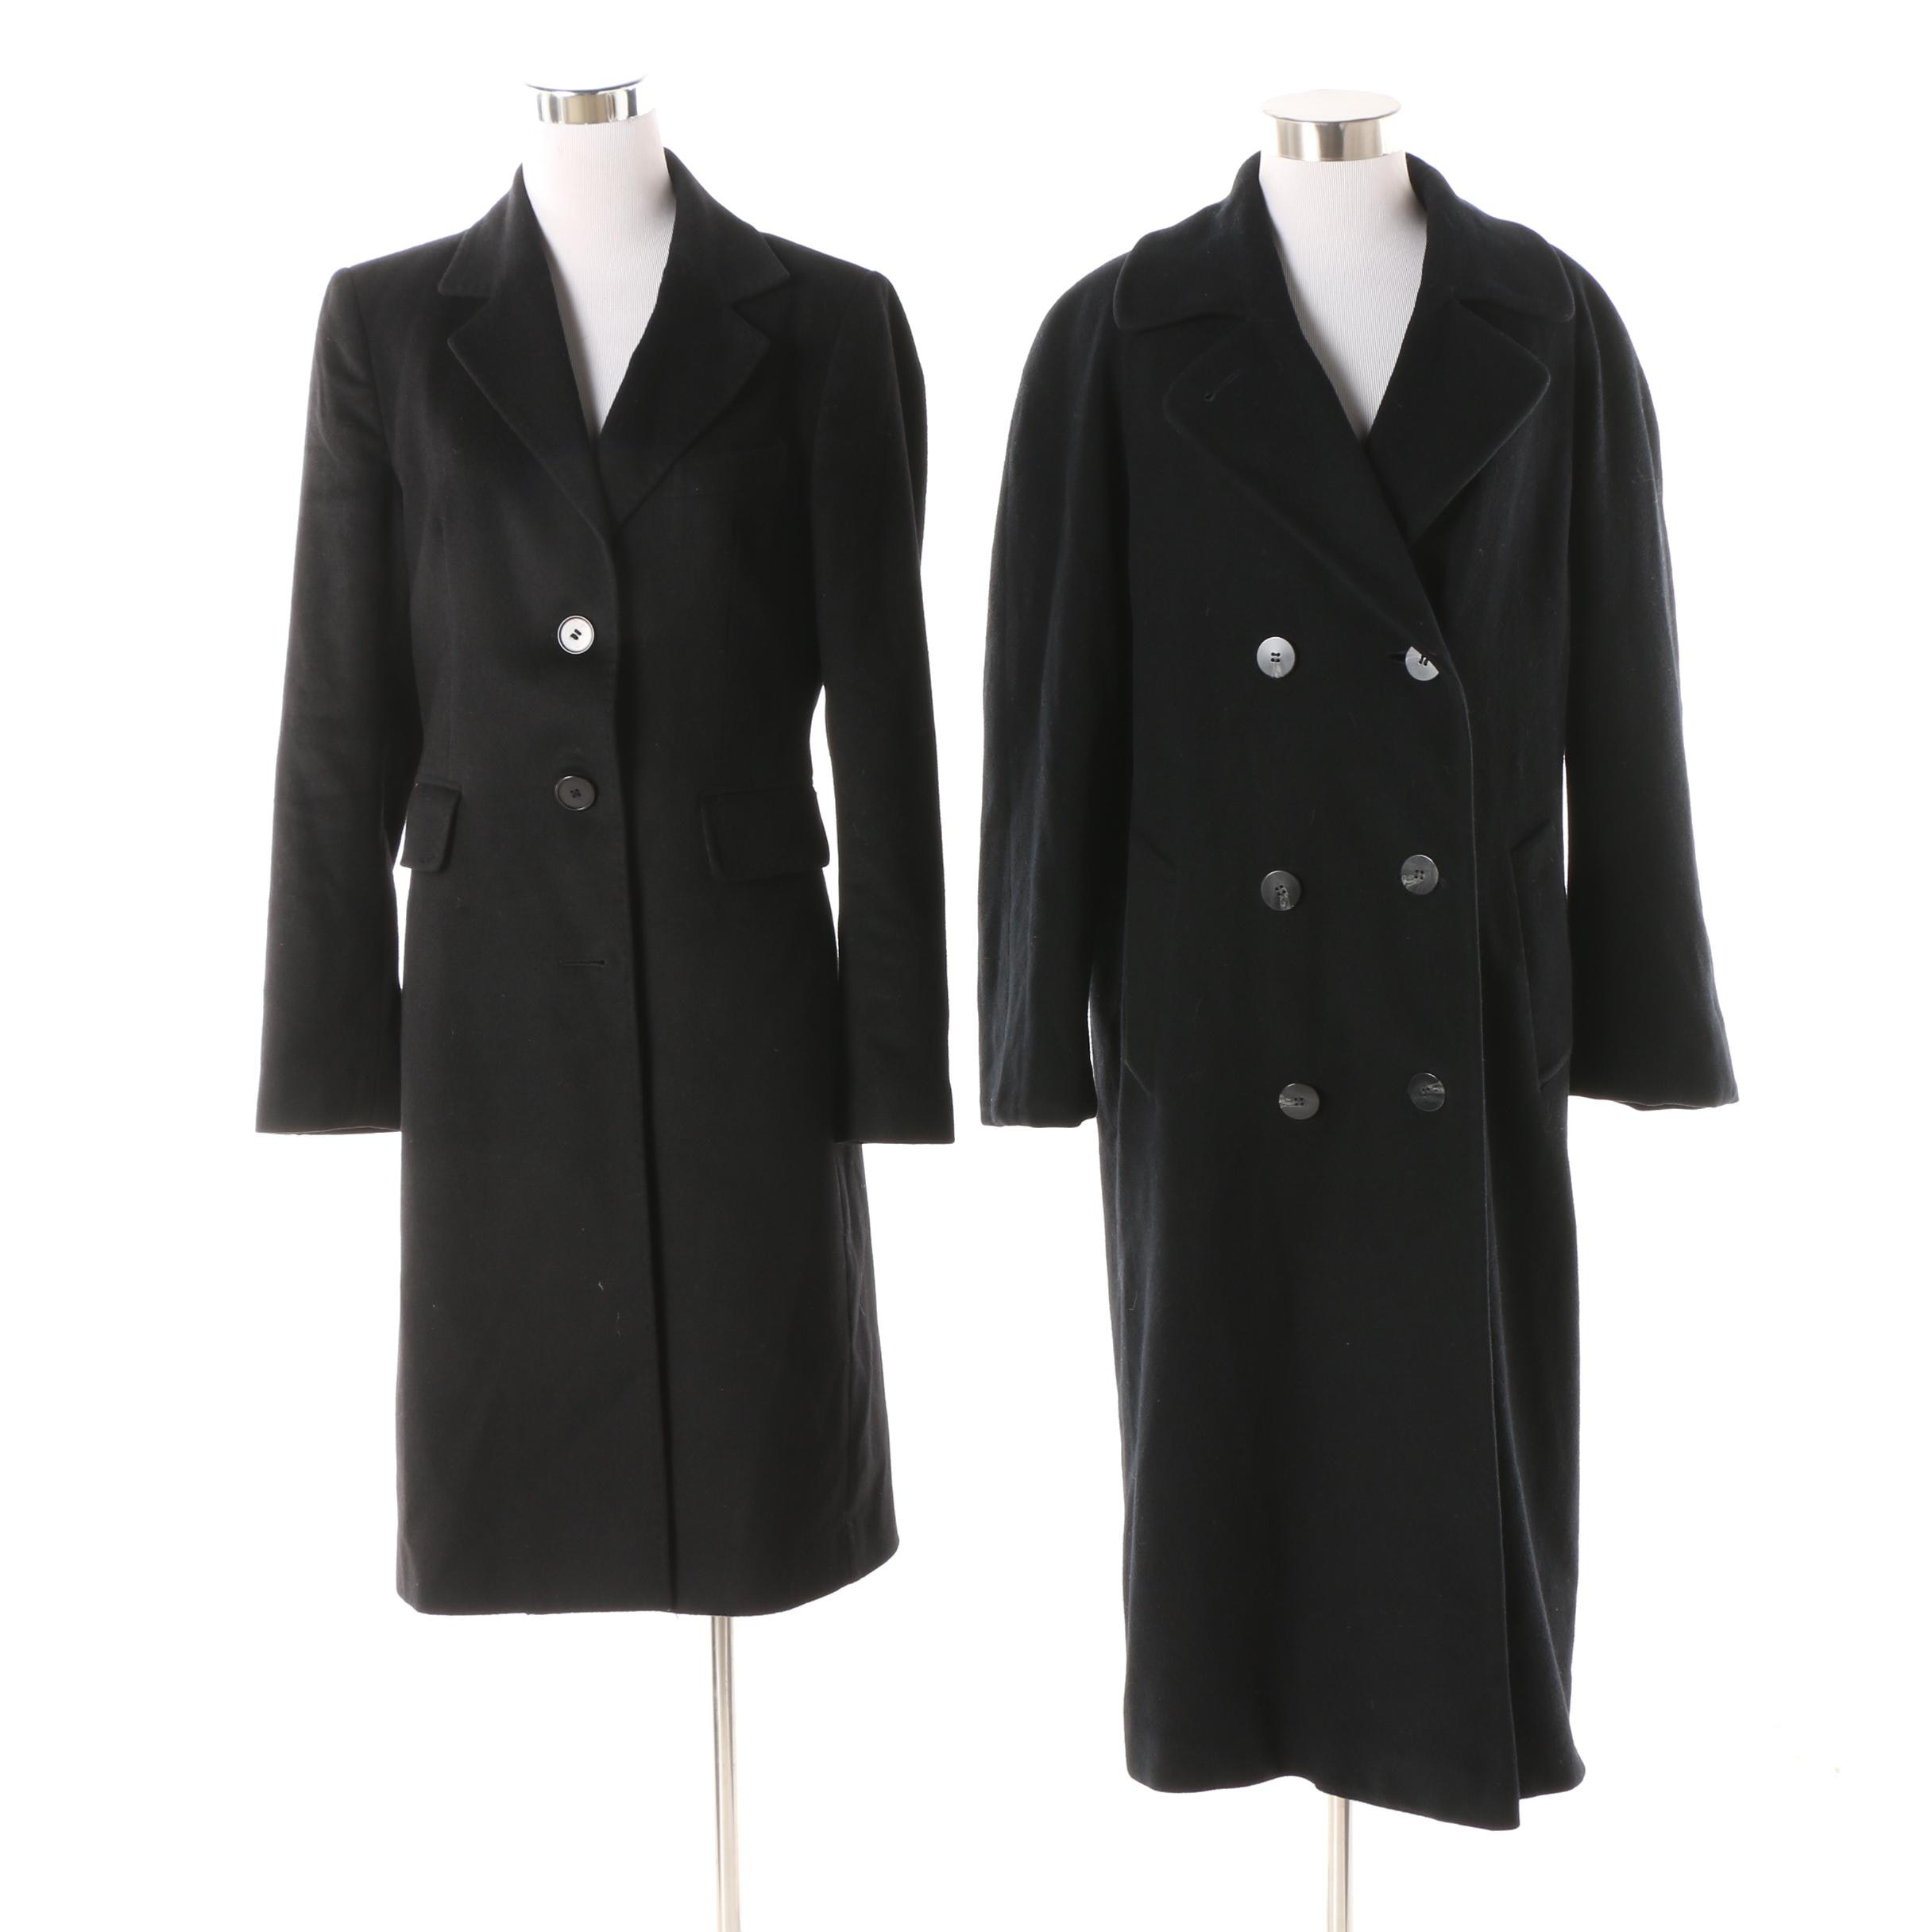 Women's Vintage and Contemporary Black Cashmere Coats including Regency Cashmere